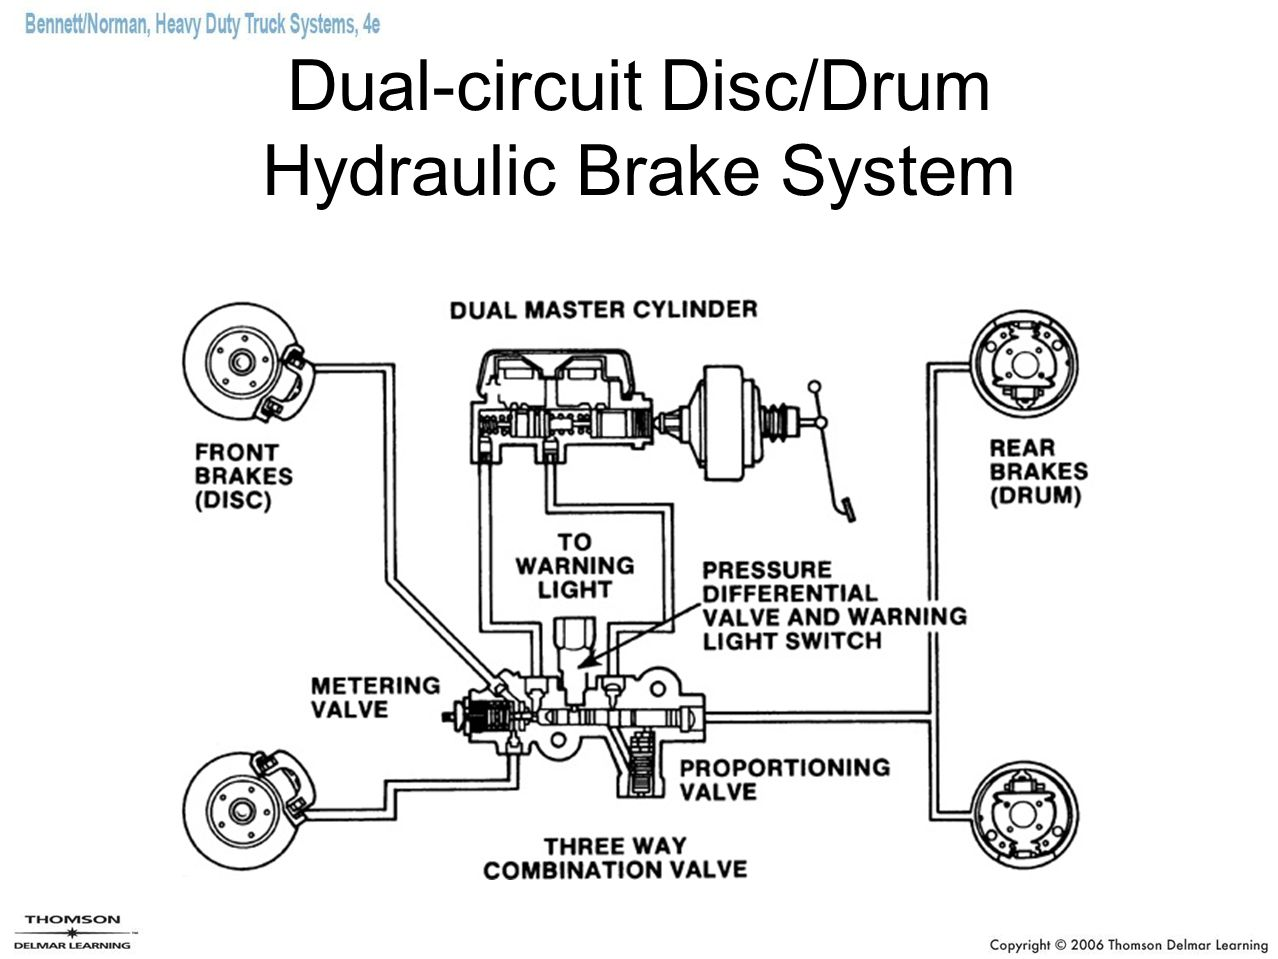 Hydraulic Brakes Diagram : Circuit diagram of hydraulic brake system and